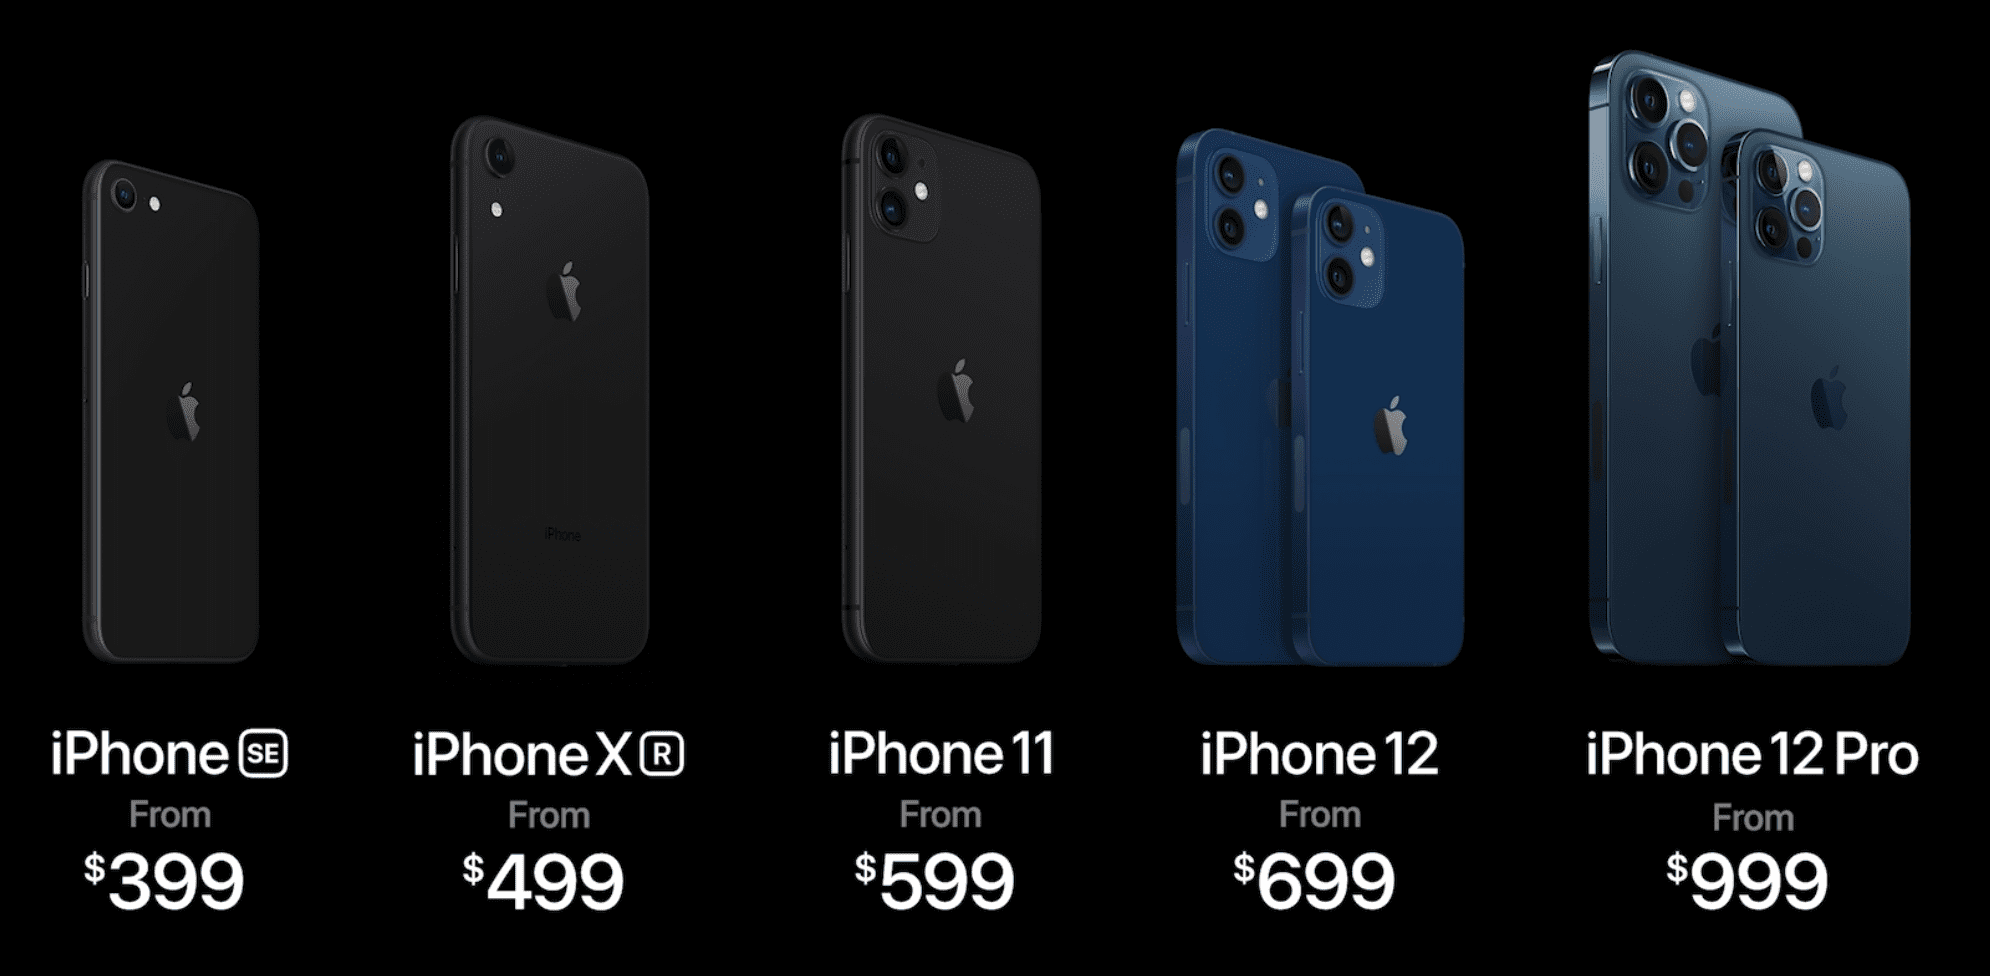 2020 iPhone Lineup